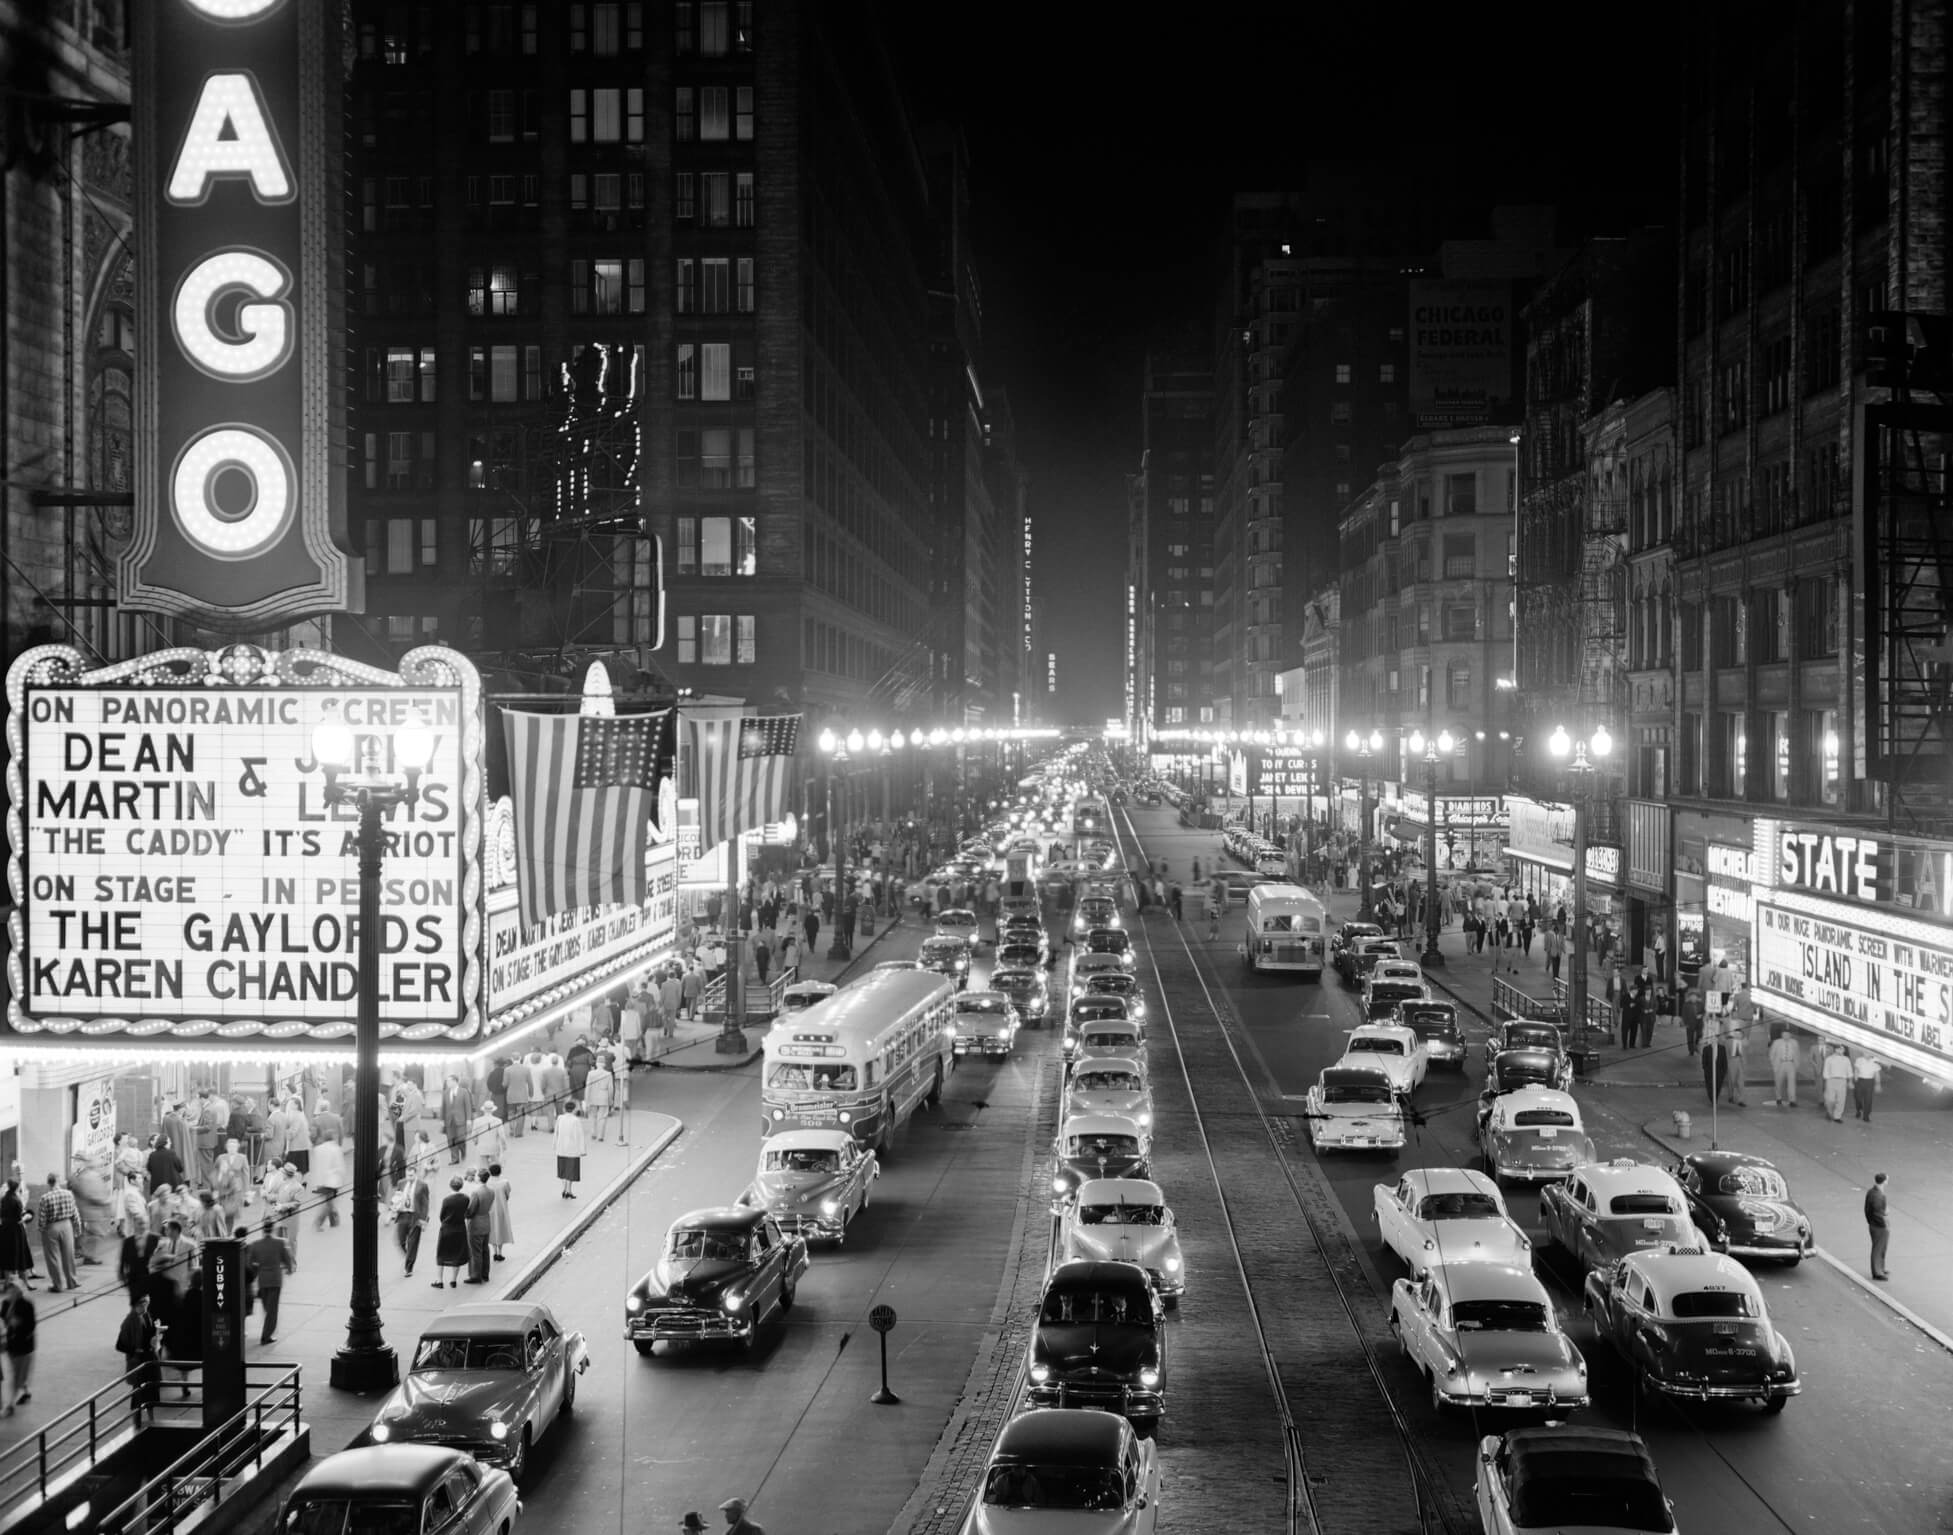 1950s 1953 NIGHT SCENE OF CHICAGO STATE STREET WITH TRAFFIC AND MOVIE MARQUEE WITH PEDESTRIANS ON THE SIDEWALKS  (Photo by H. Armstrong Roberts/ClassicStock/Getty Images)